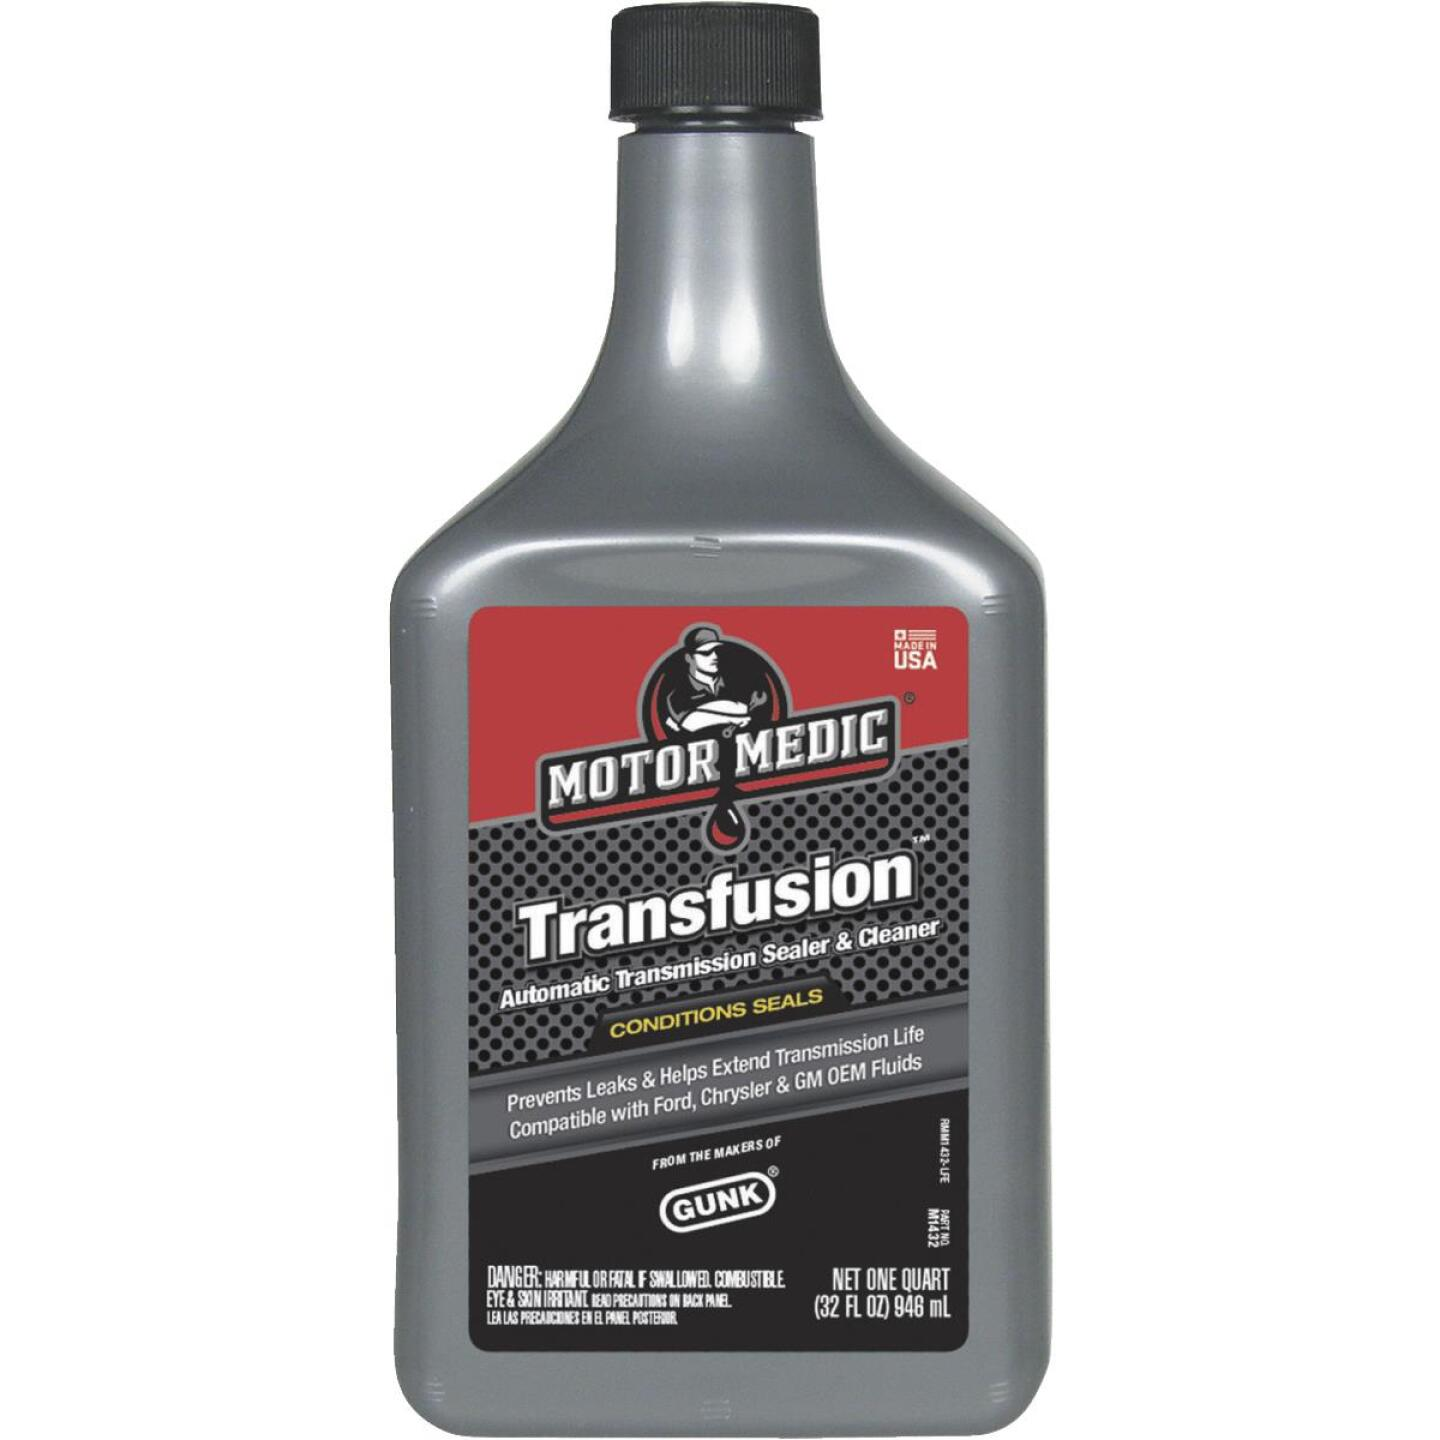 MotorMedic 32 Oz. Automatic Transmission Fluid And Conditioner Image 1